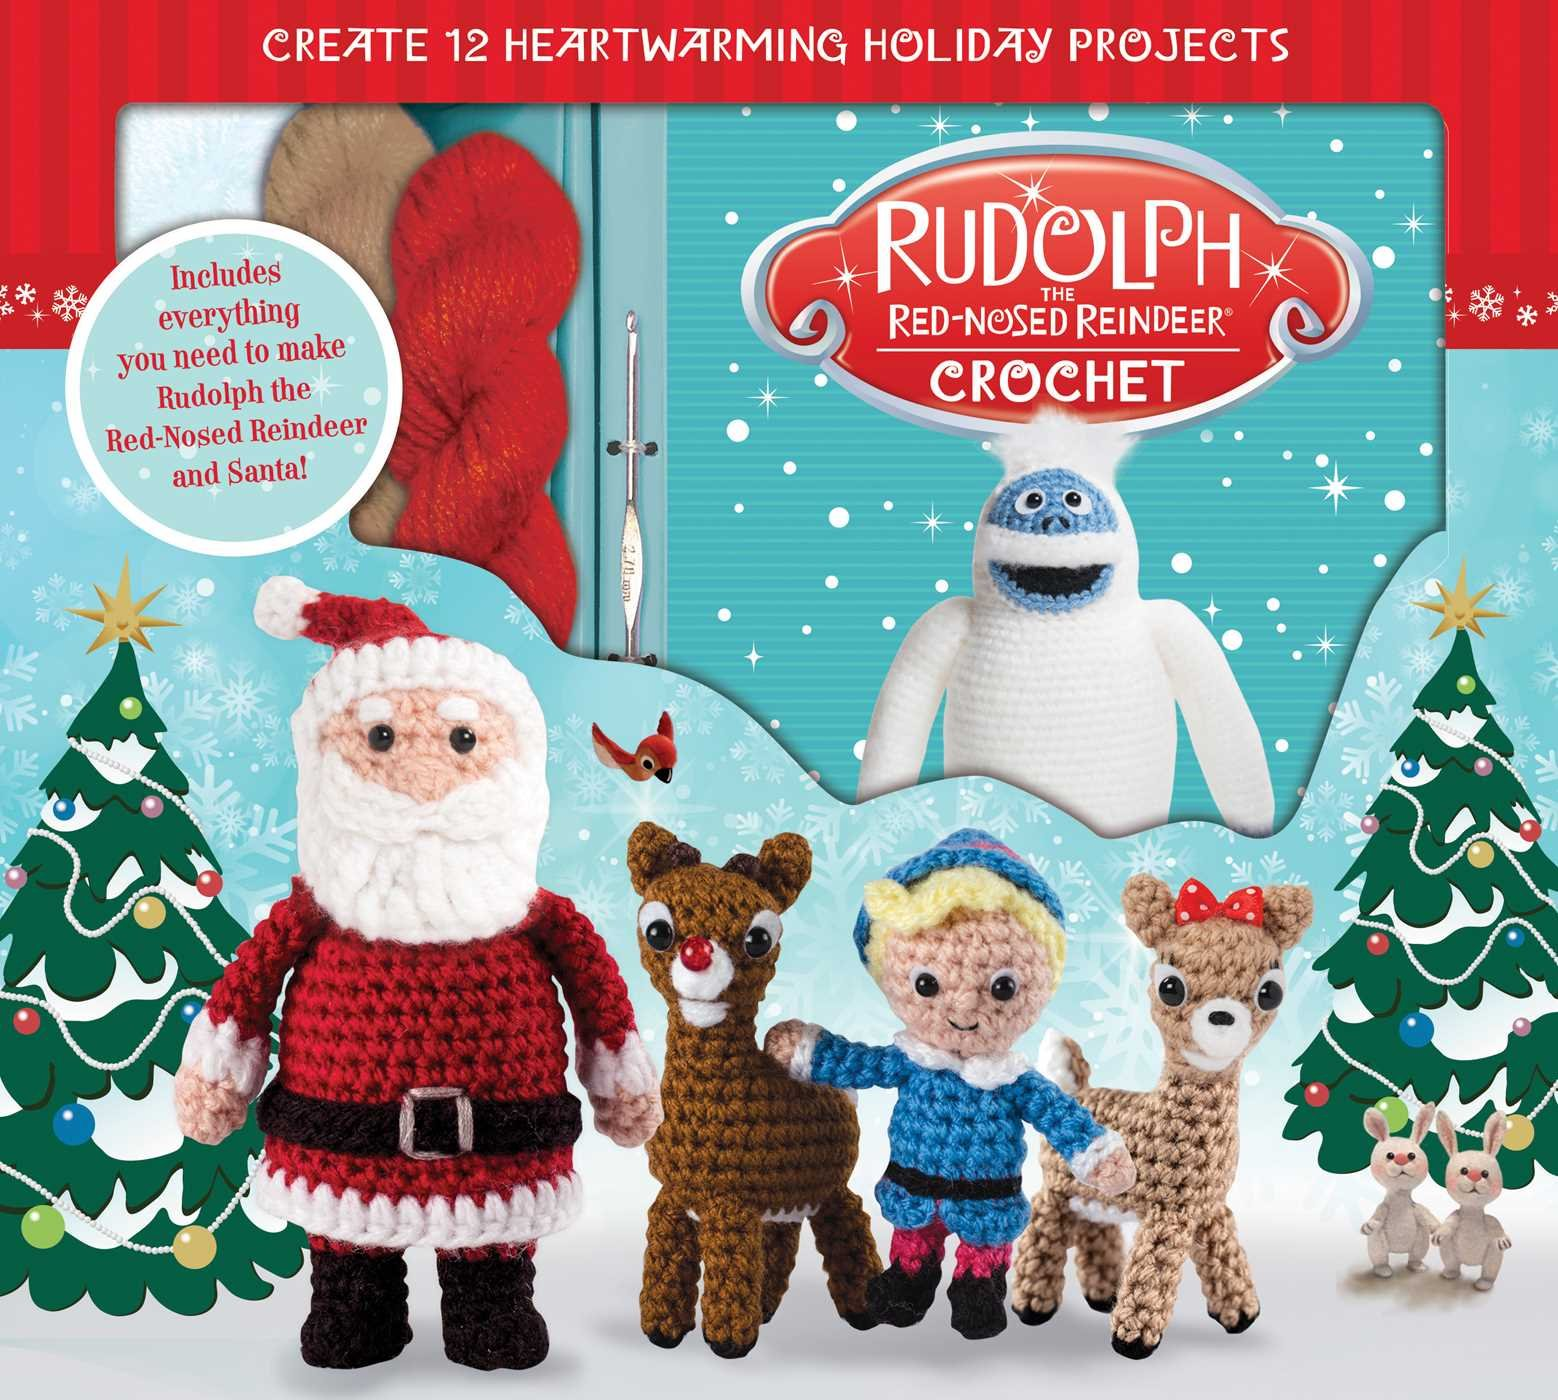 Rudolph the Red-Nosed Reindeer Crochet (Crochet Kits) ebook